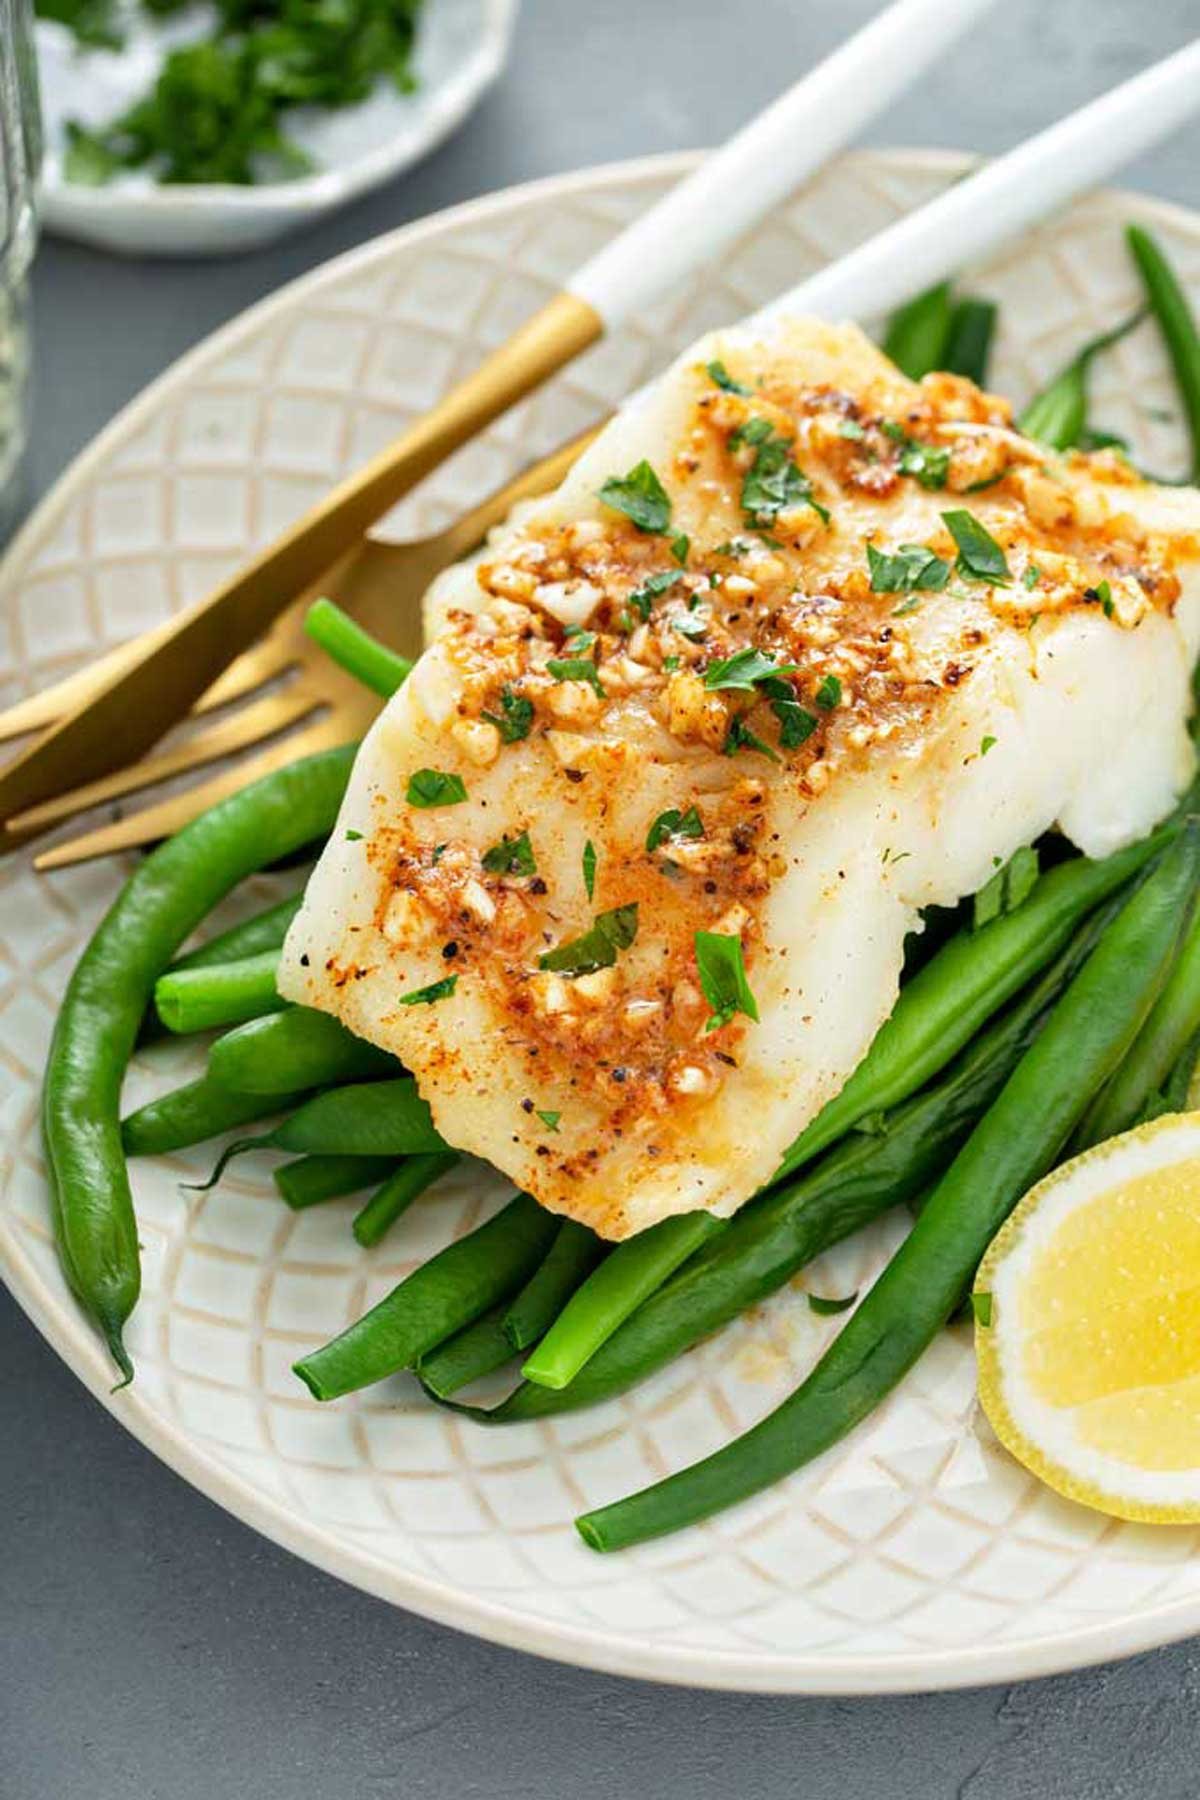 Cod Fish fillet on a bed of green beans